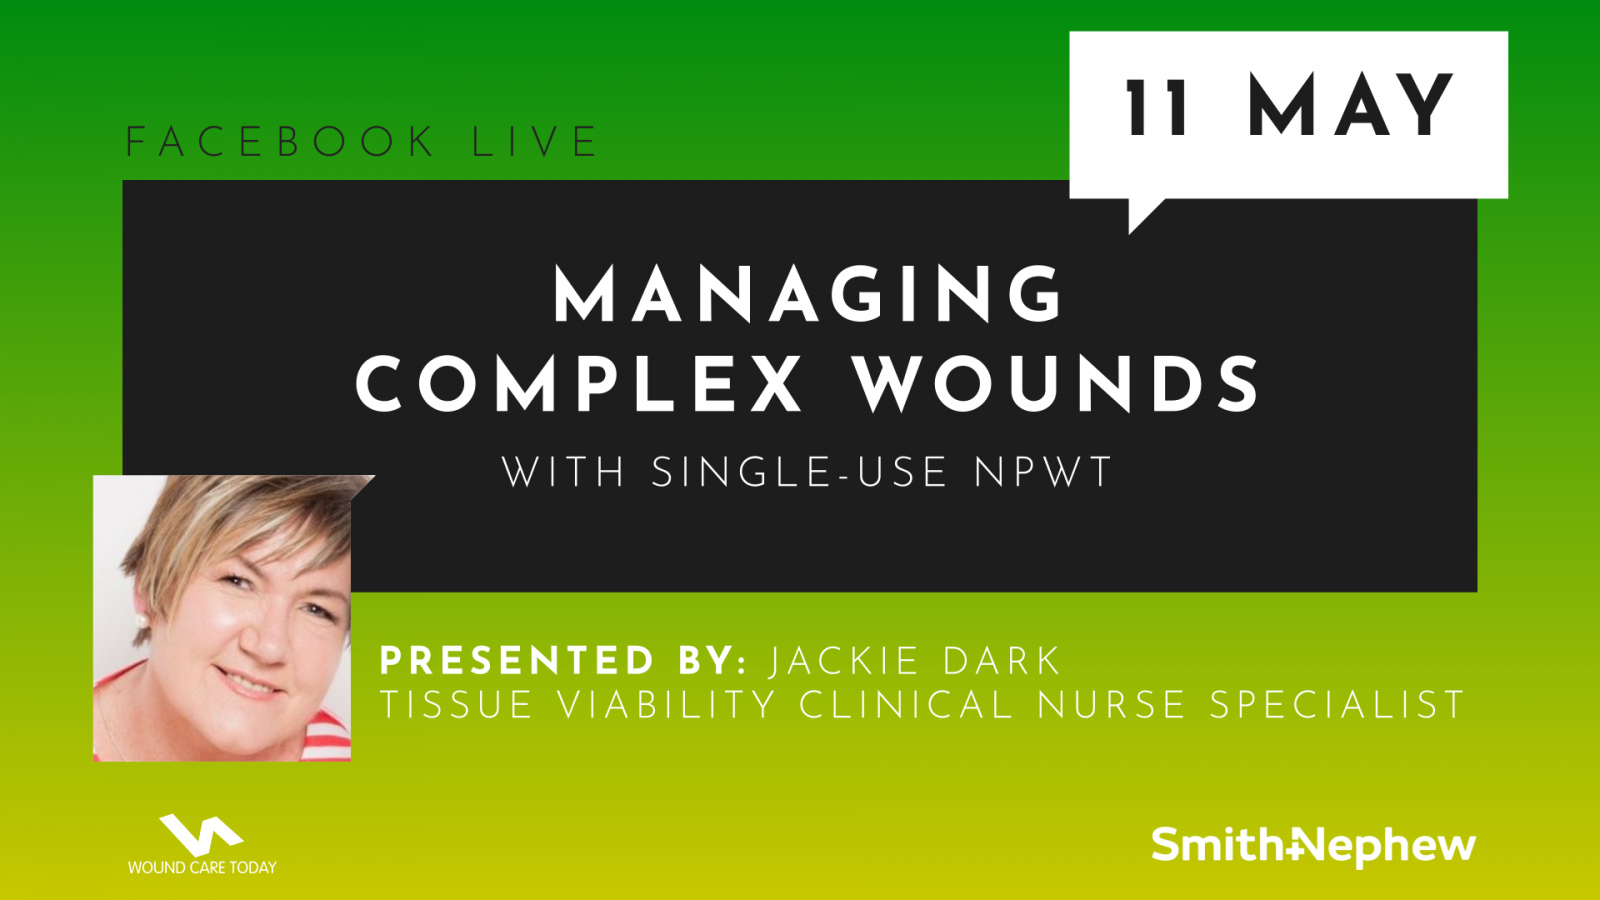 Managing complex wounds with single-use NPWT